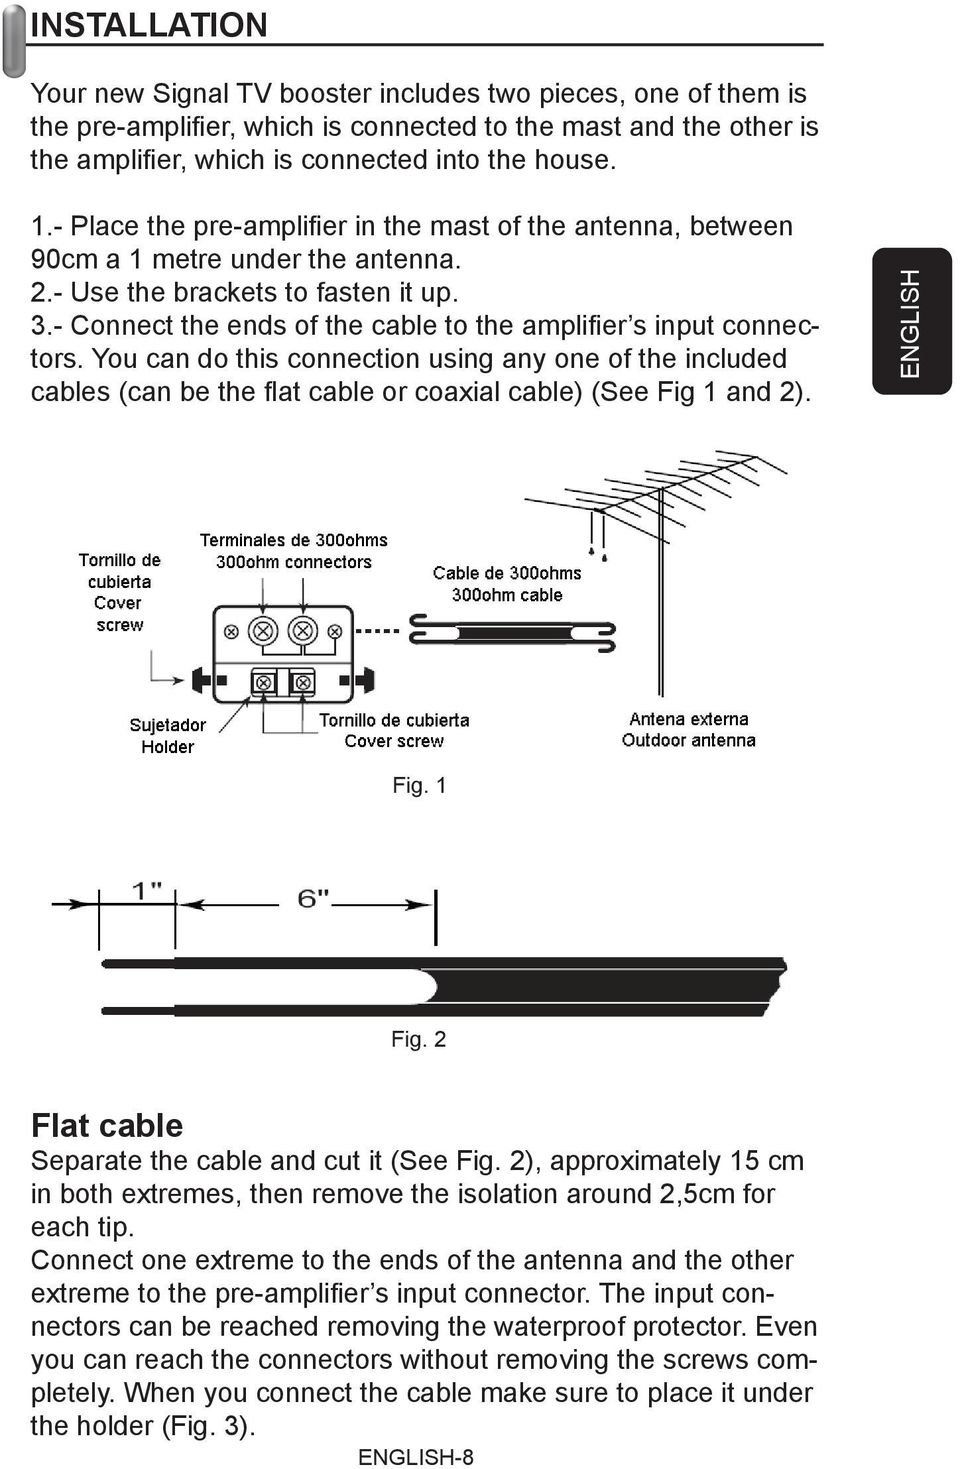 - Connect the ends of the cable to the amplifi er s input connectors. You can do this connection using any one of the included cables (can be the fl at cable or coaxial cable) (See Fig 1 and 2).